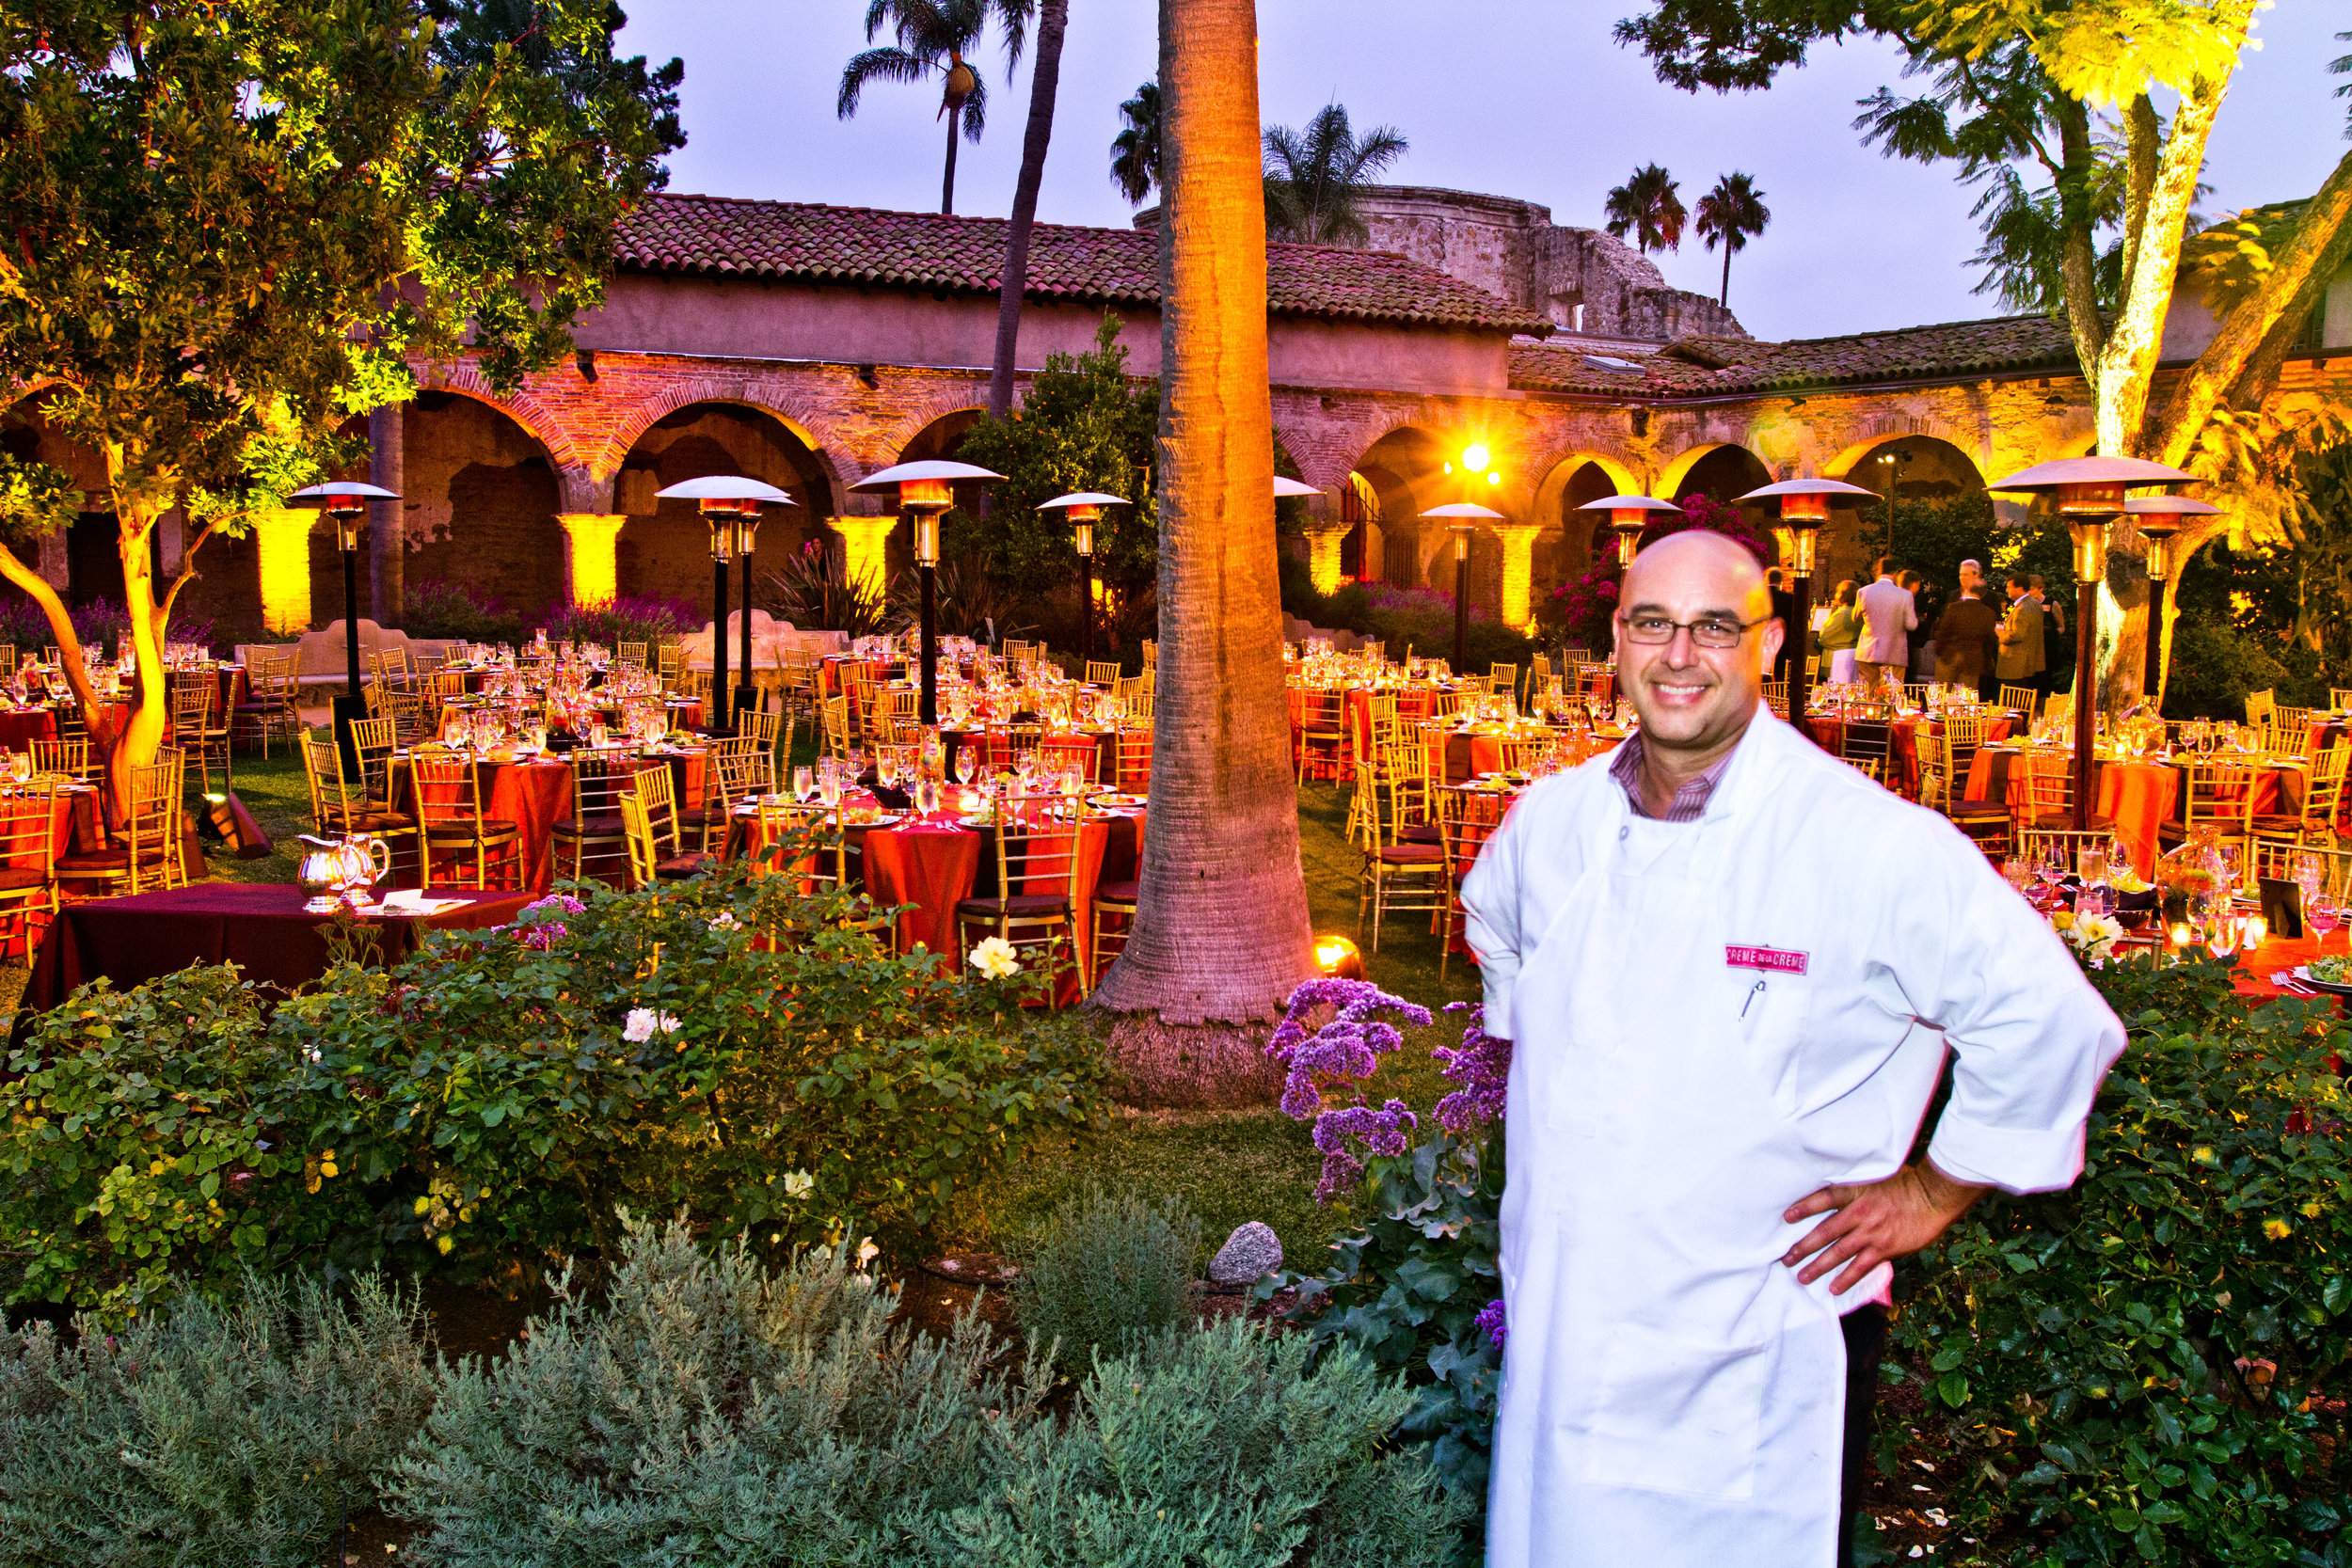 culinary-services-orange-county.jpg